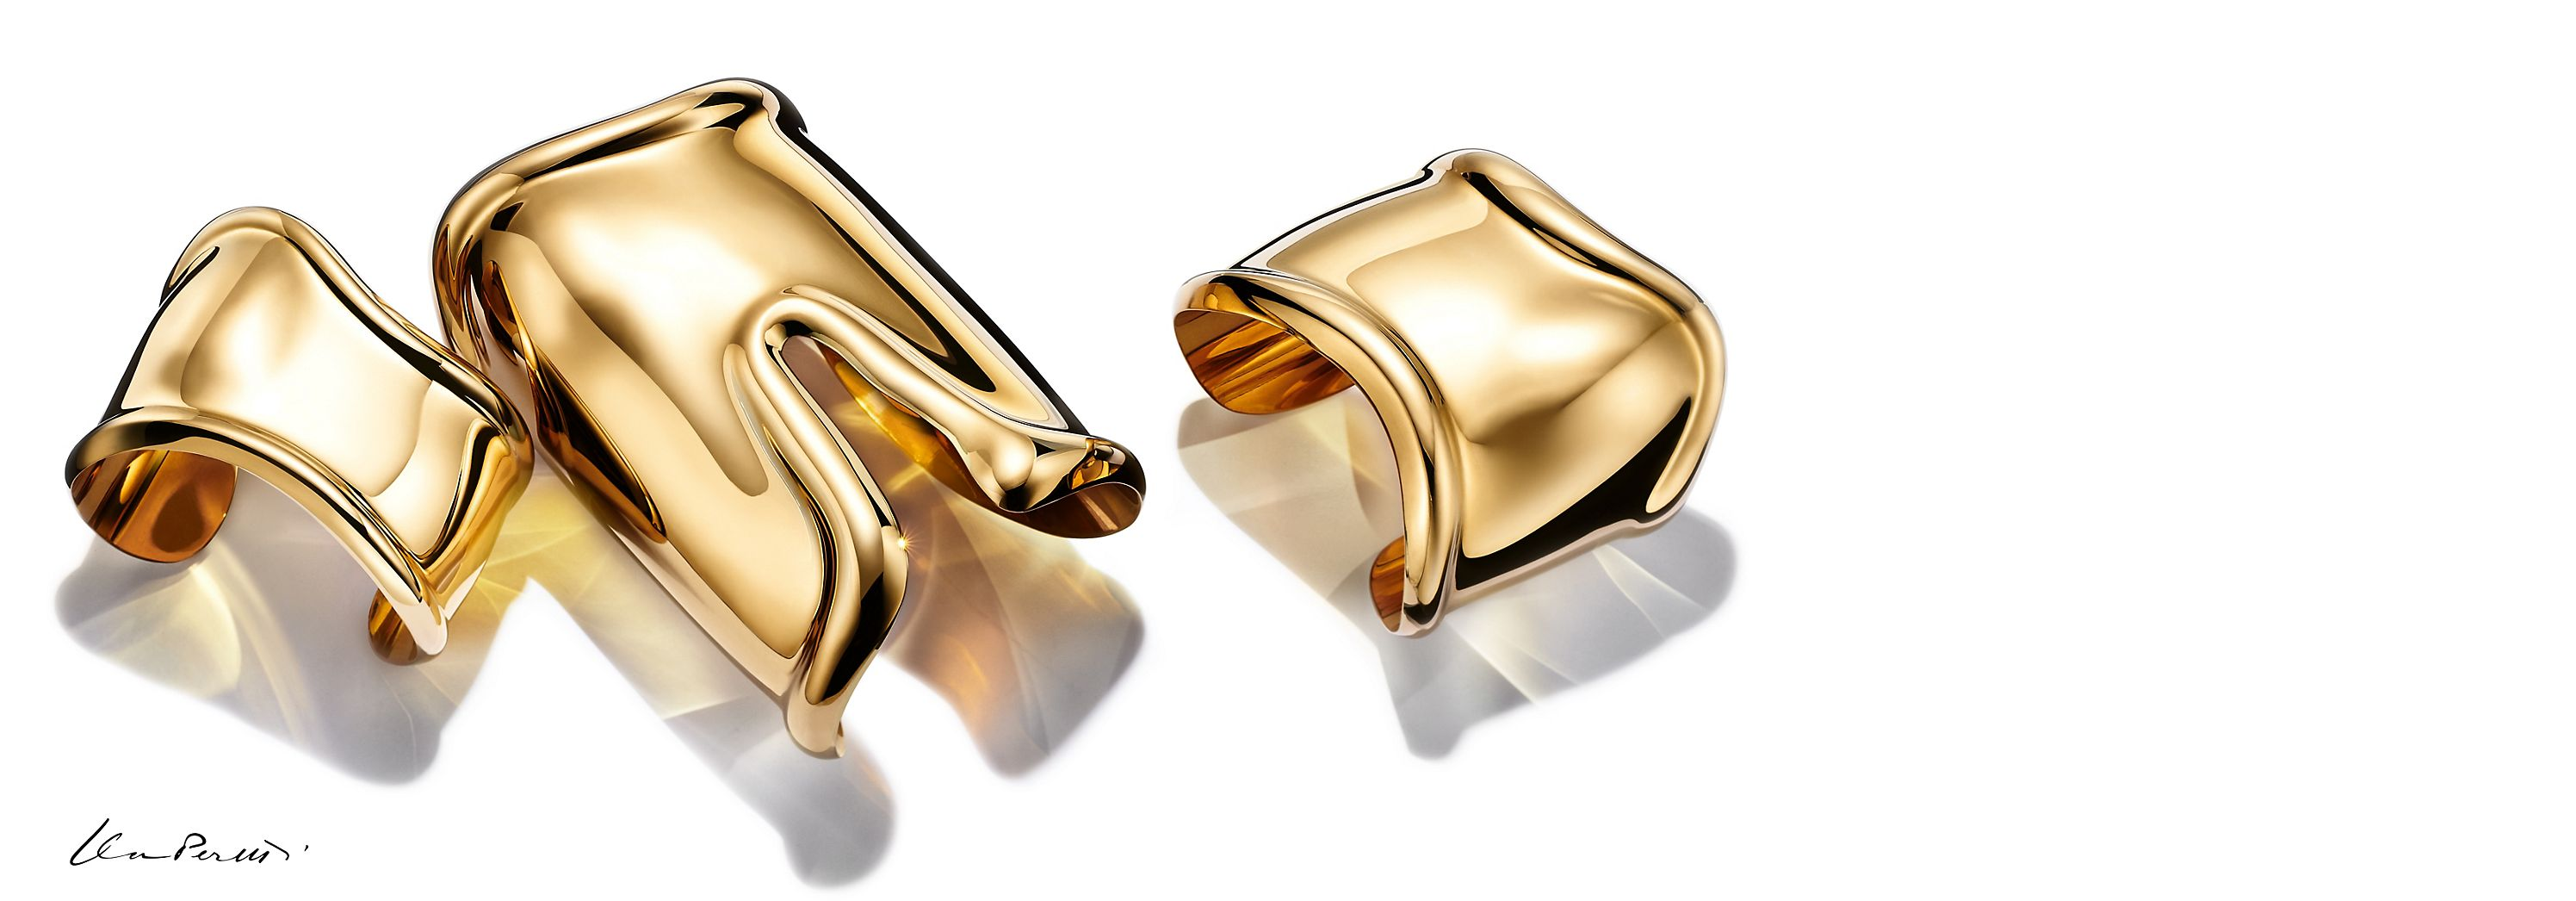 Tiffany & Co. Fifty Years of the Bone Cuff